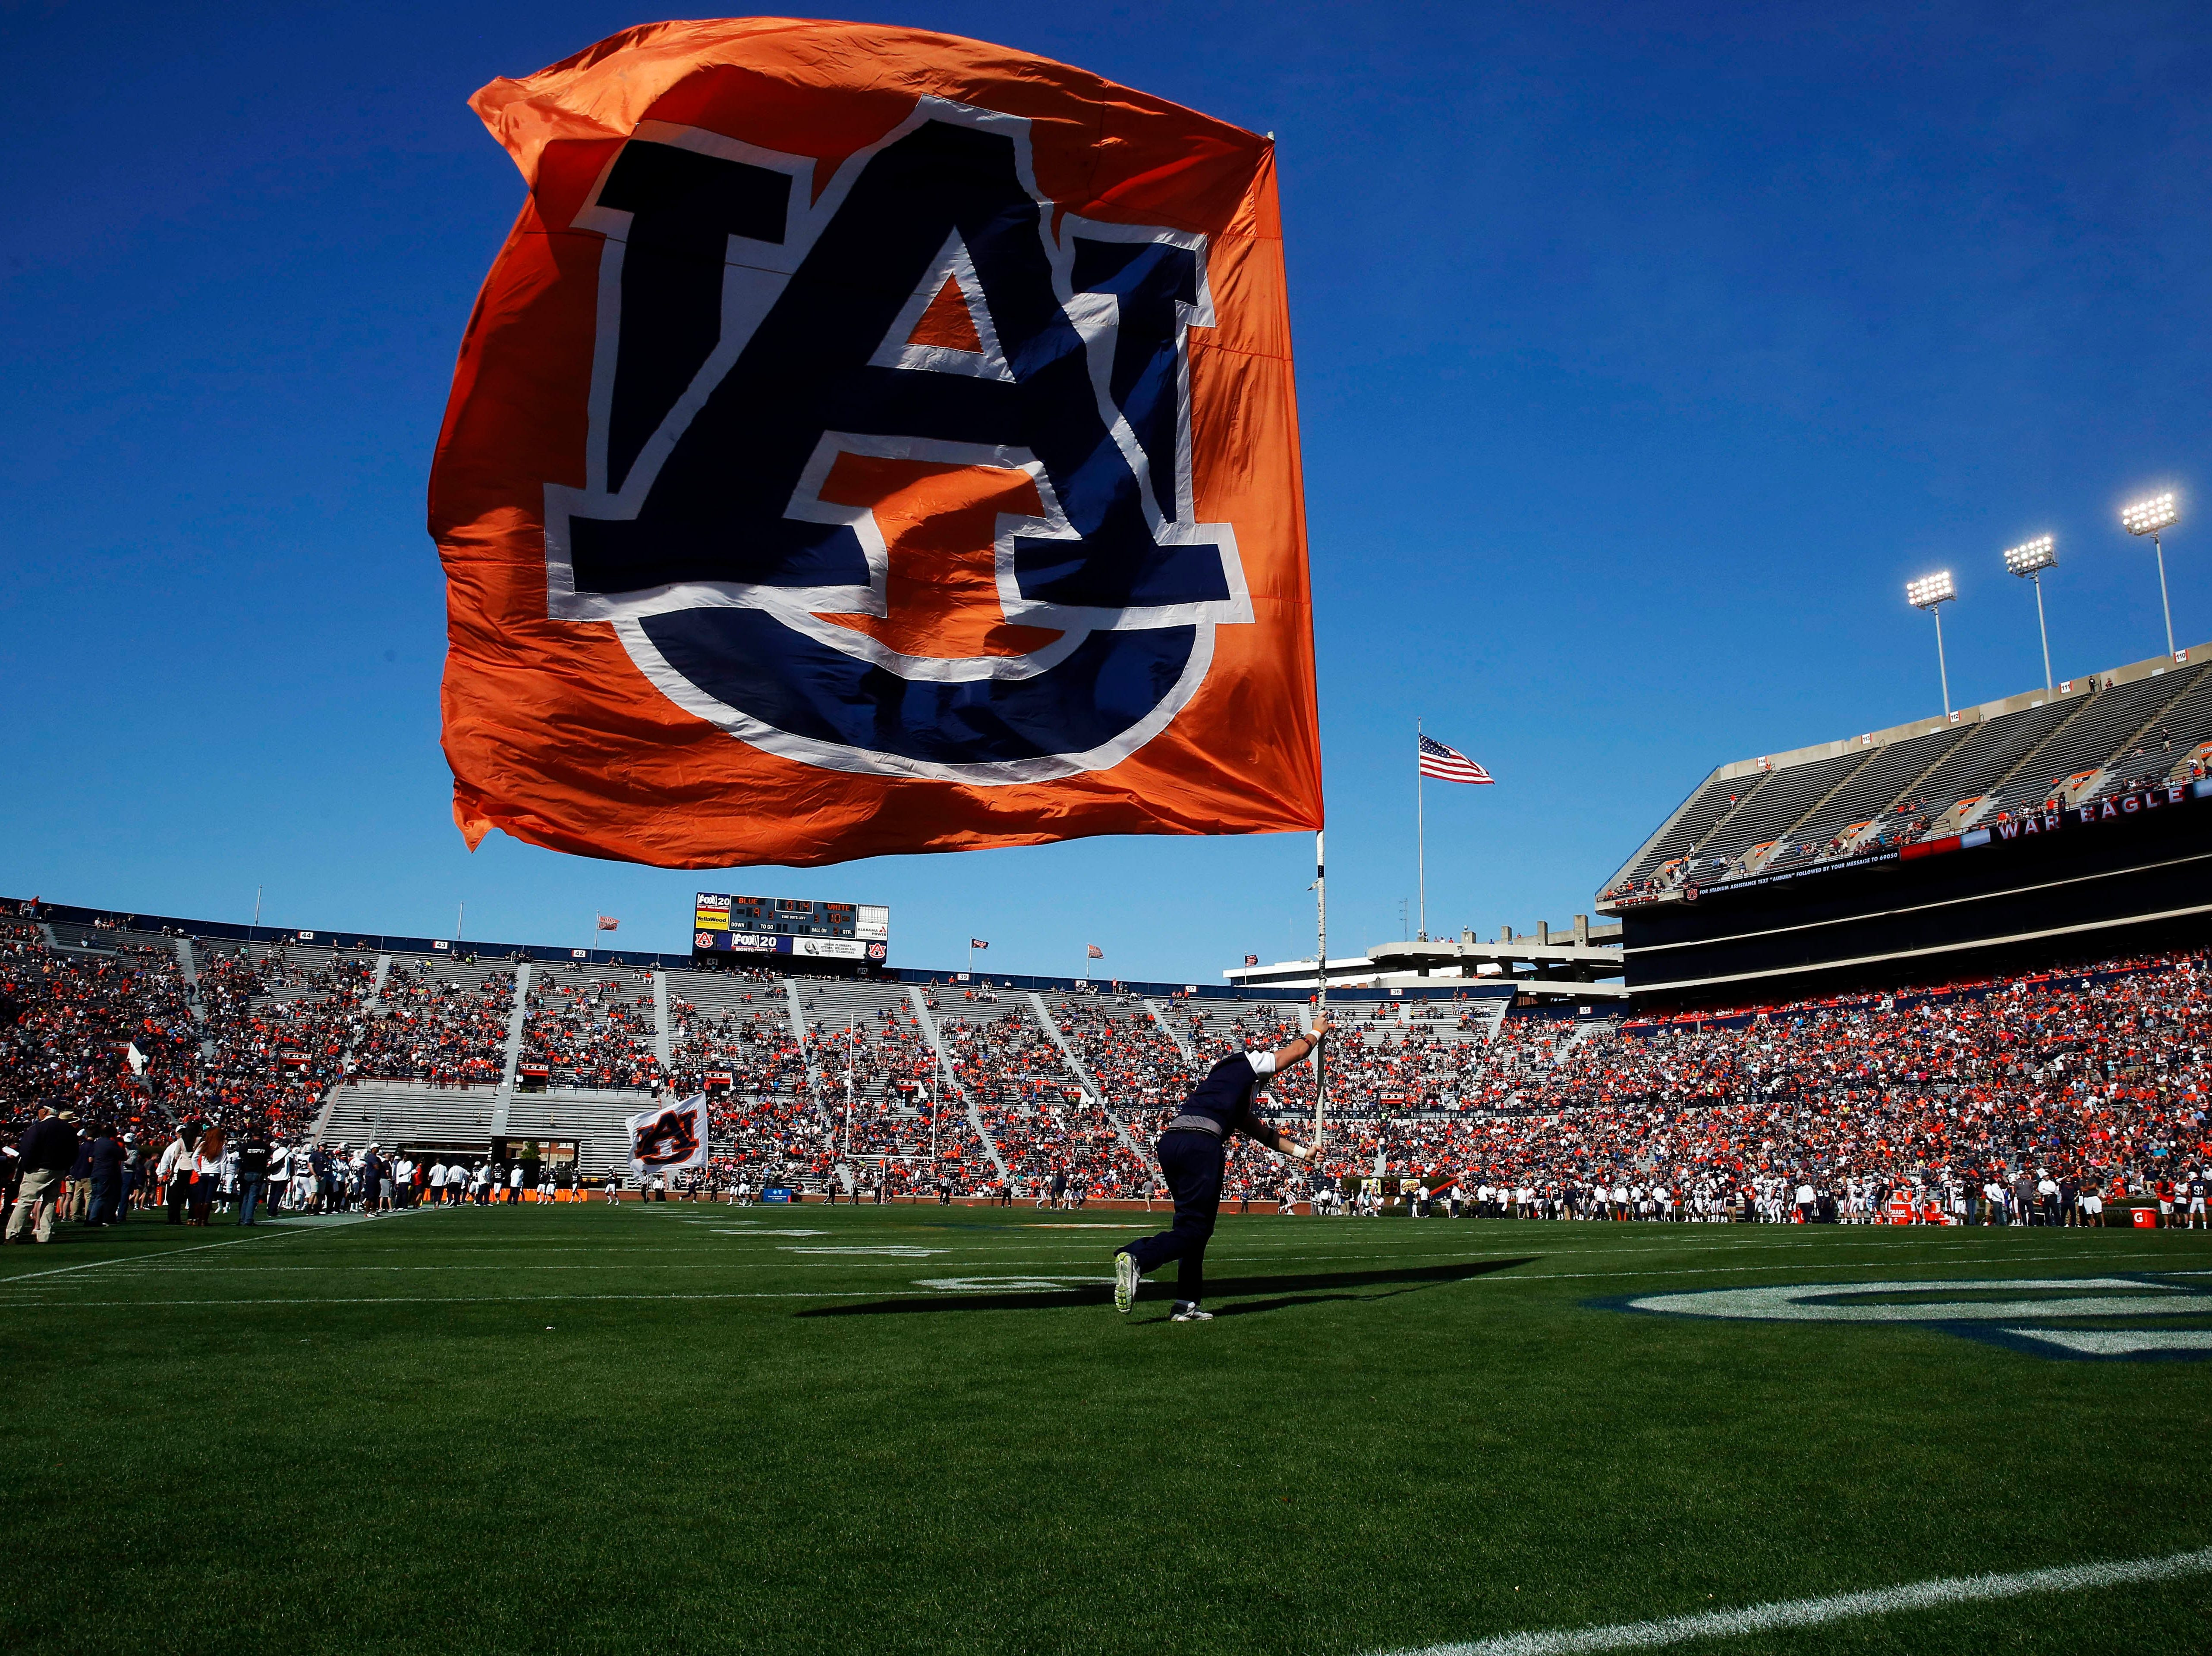 After Auburn scores a cheerleader carries a flag across the end zone in celebration in the first half during a spring NCAA college football game Saturday, April 9, 2016, in Auburn, Ala.